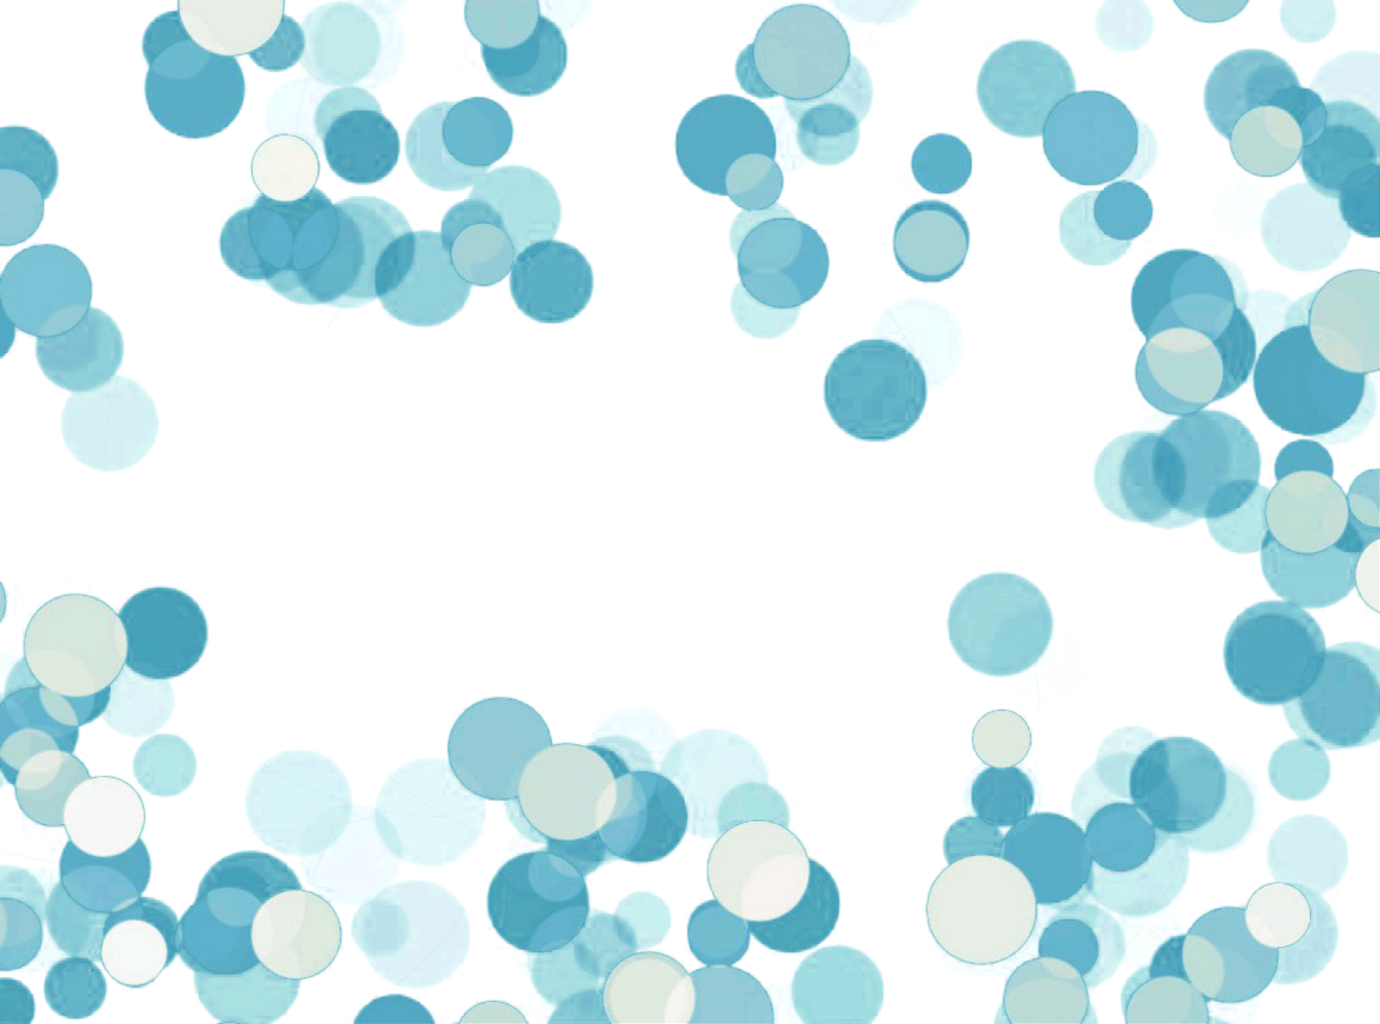 Blue bokeh png. Clipart images gallery for